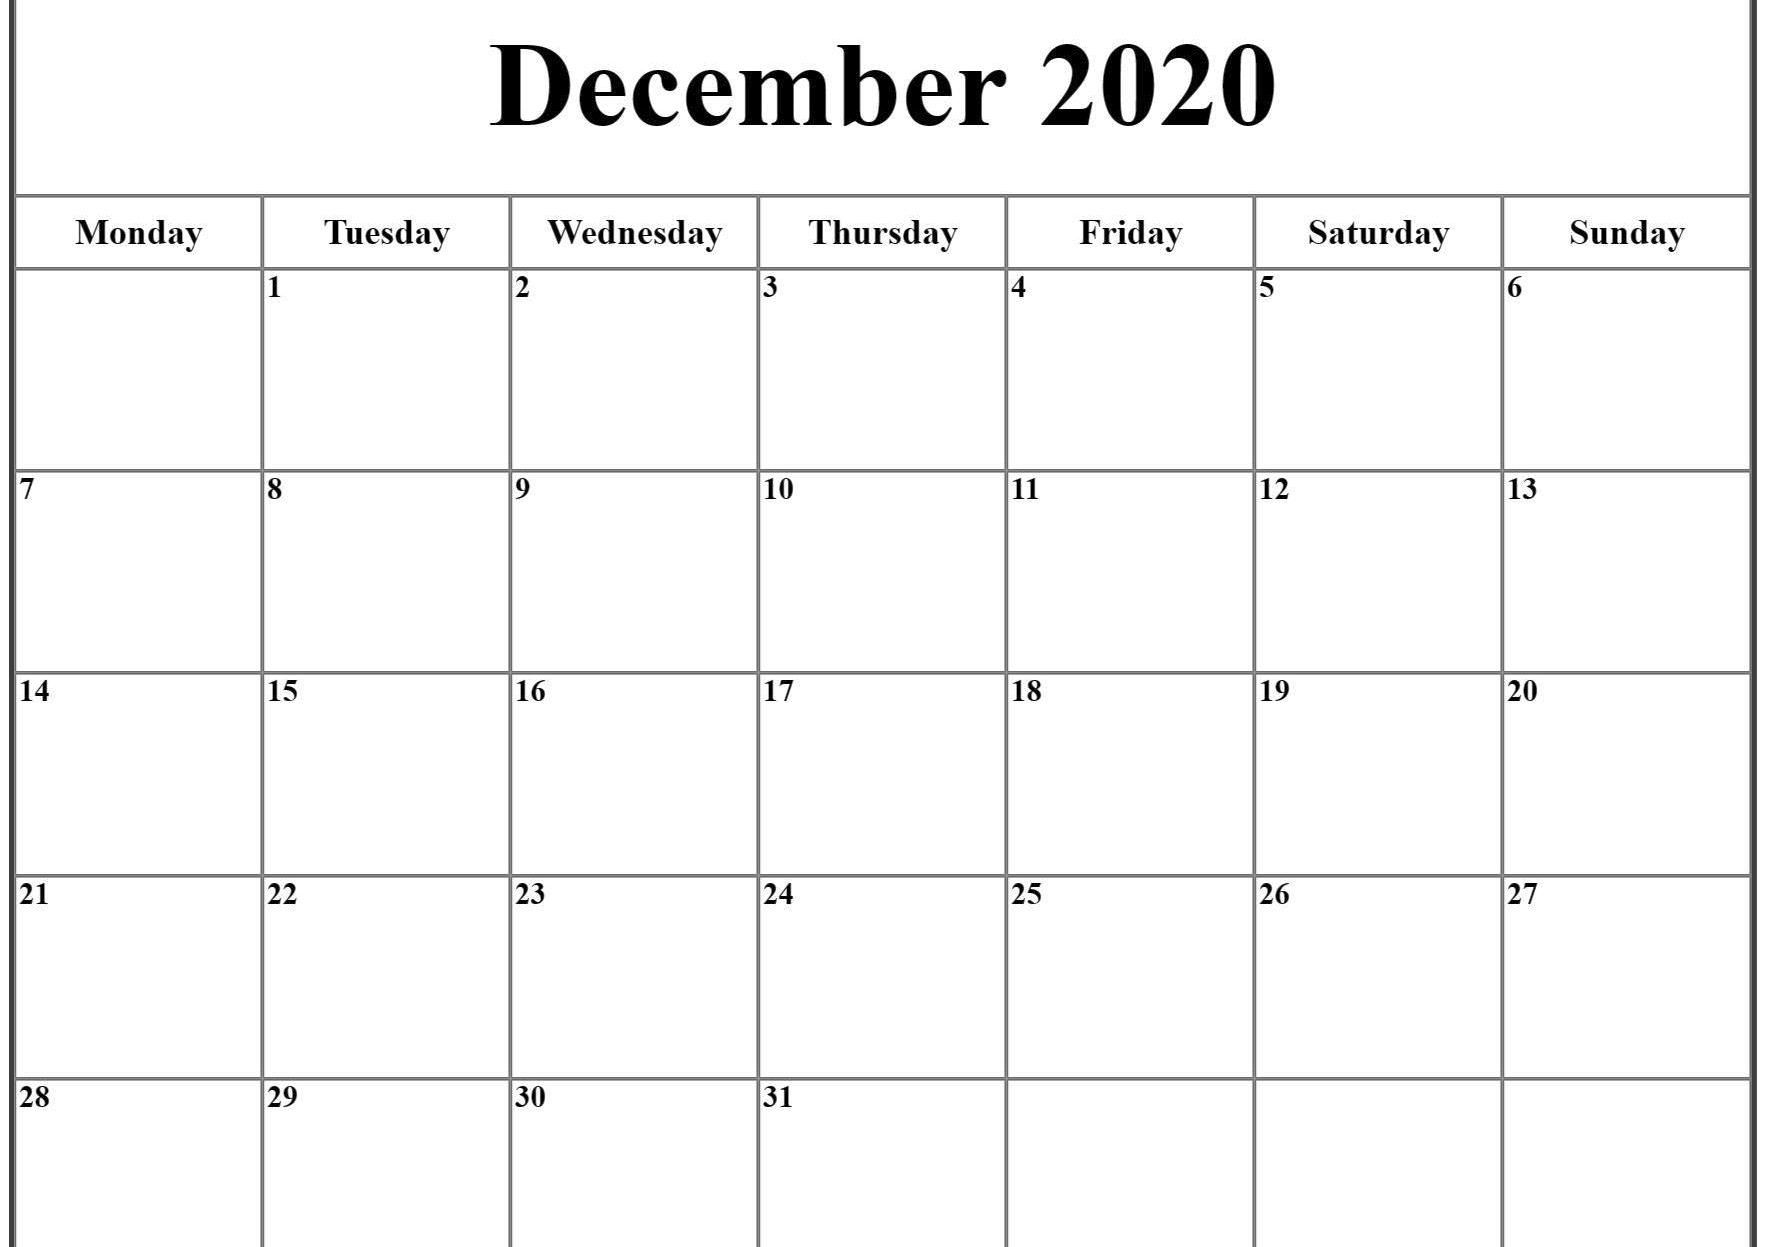 December 2020 Calendar Excel | December Calendar, Printable intended for Calander For December 2020